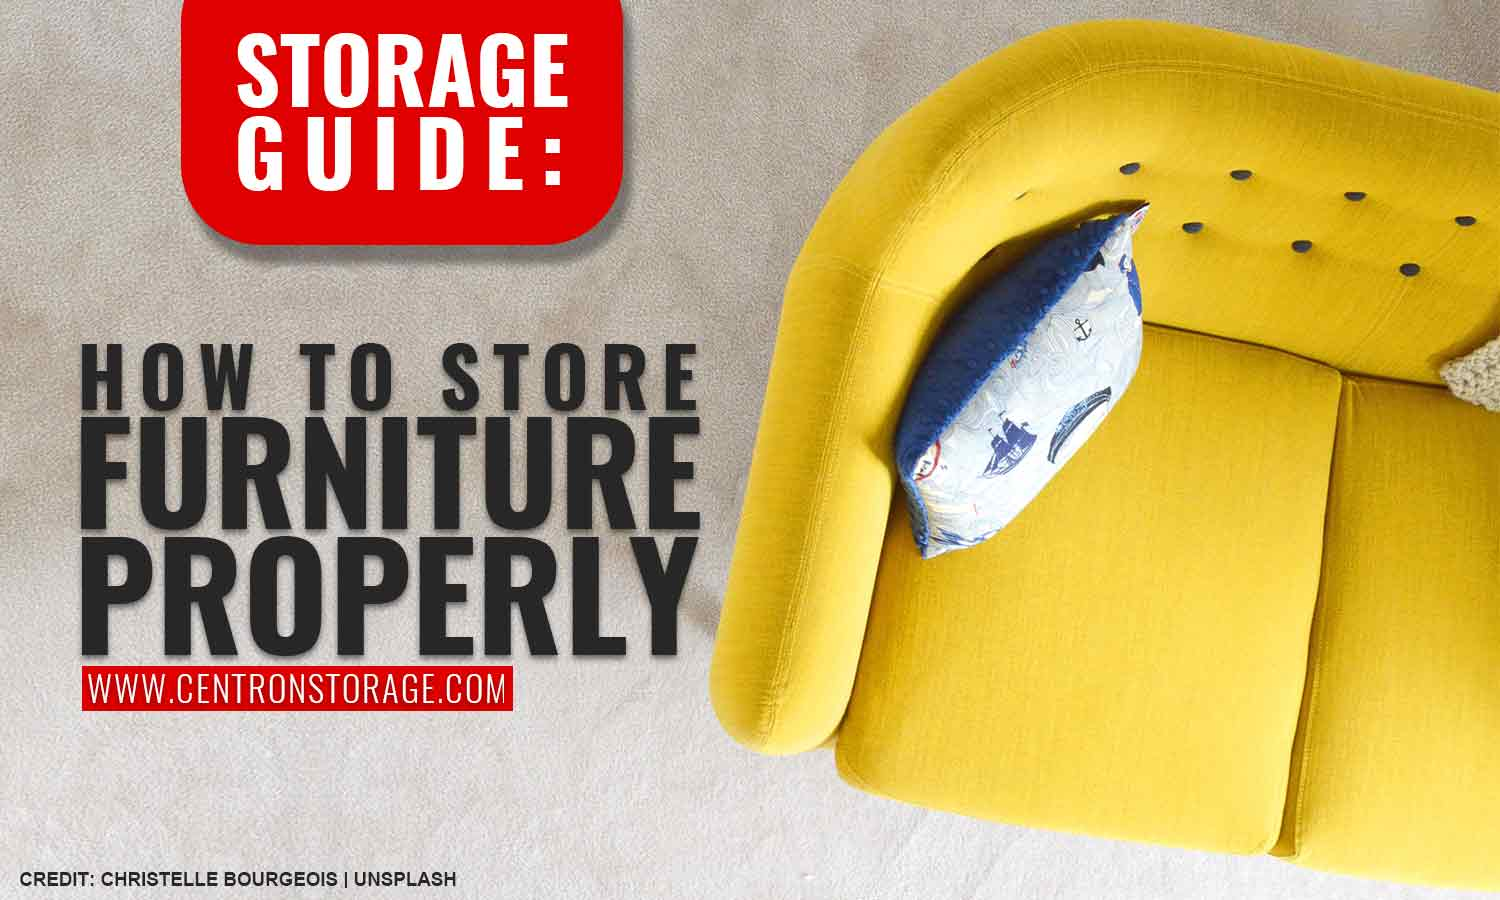 Storage Guide: How to Store Furniture Properly